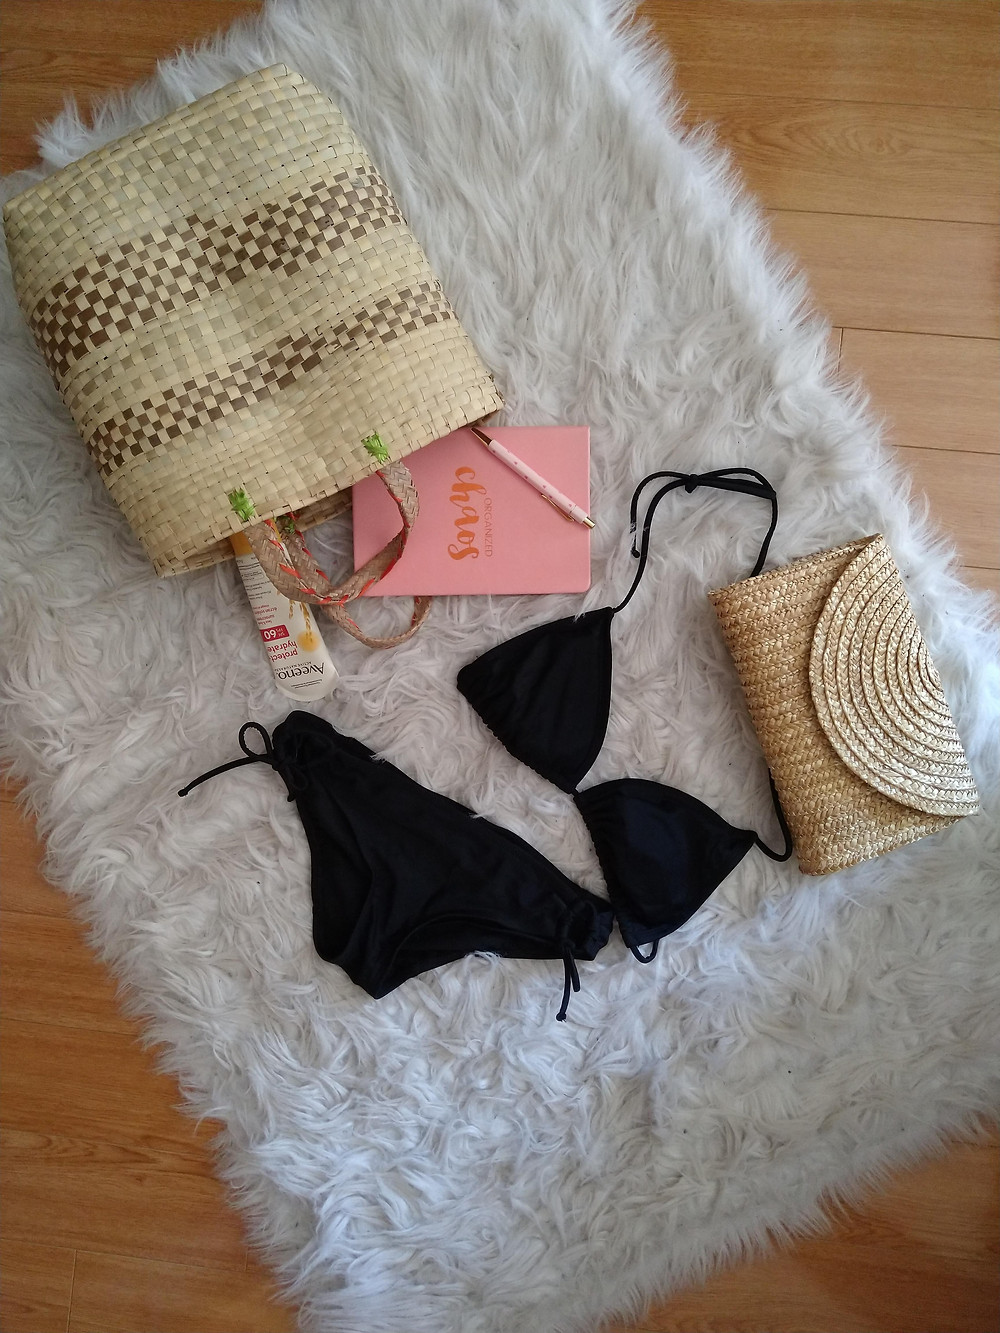 swim suits and beach bags